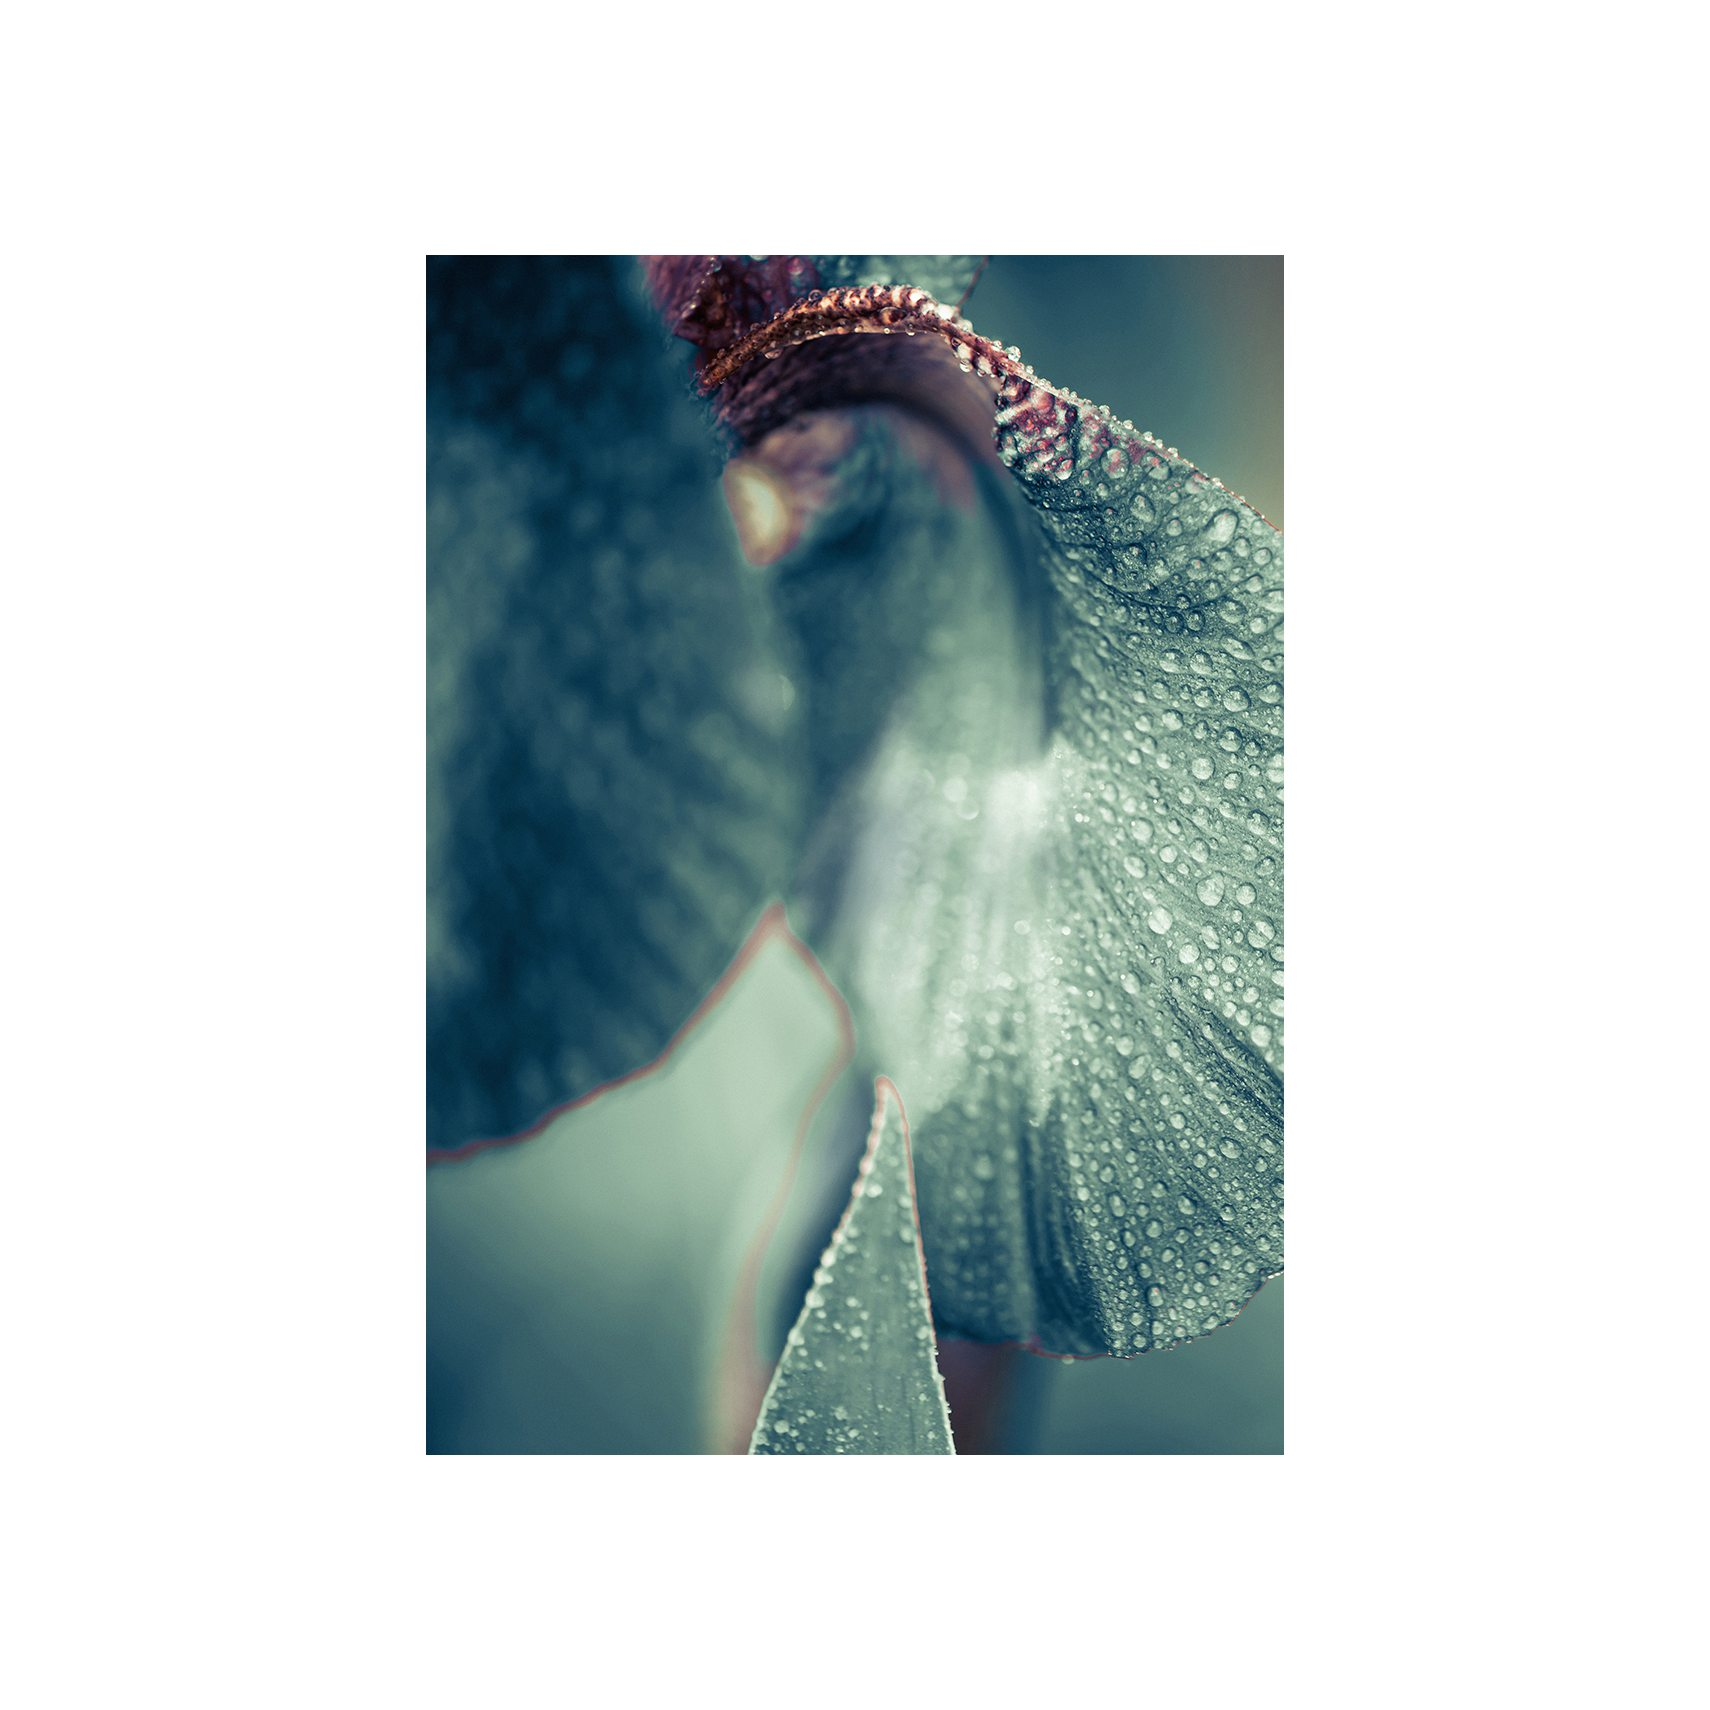 ARTPRINT 29 affisch utan ram 50 x 70 cm - Secret Garden Morning Dew